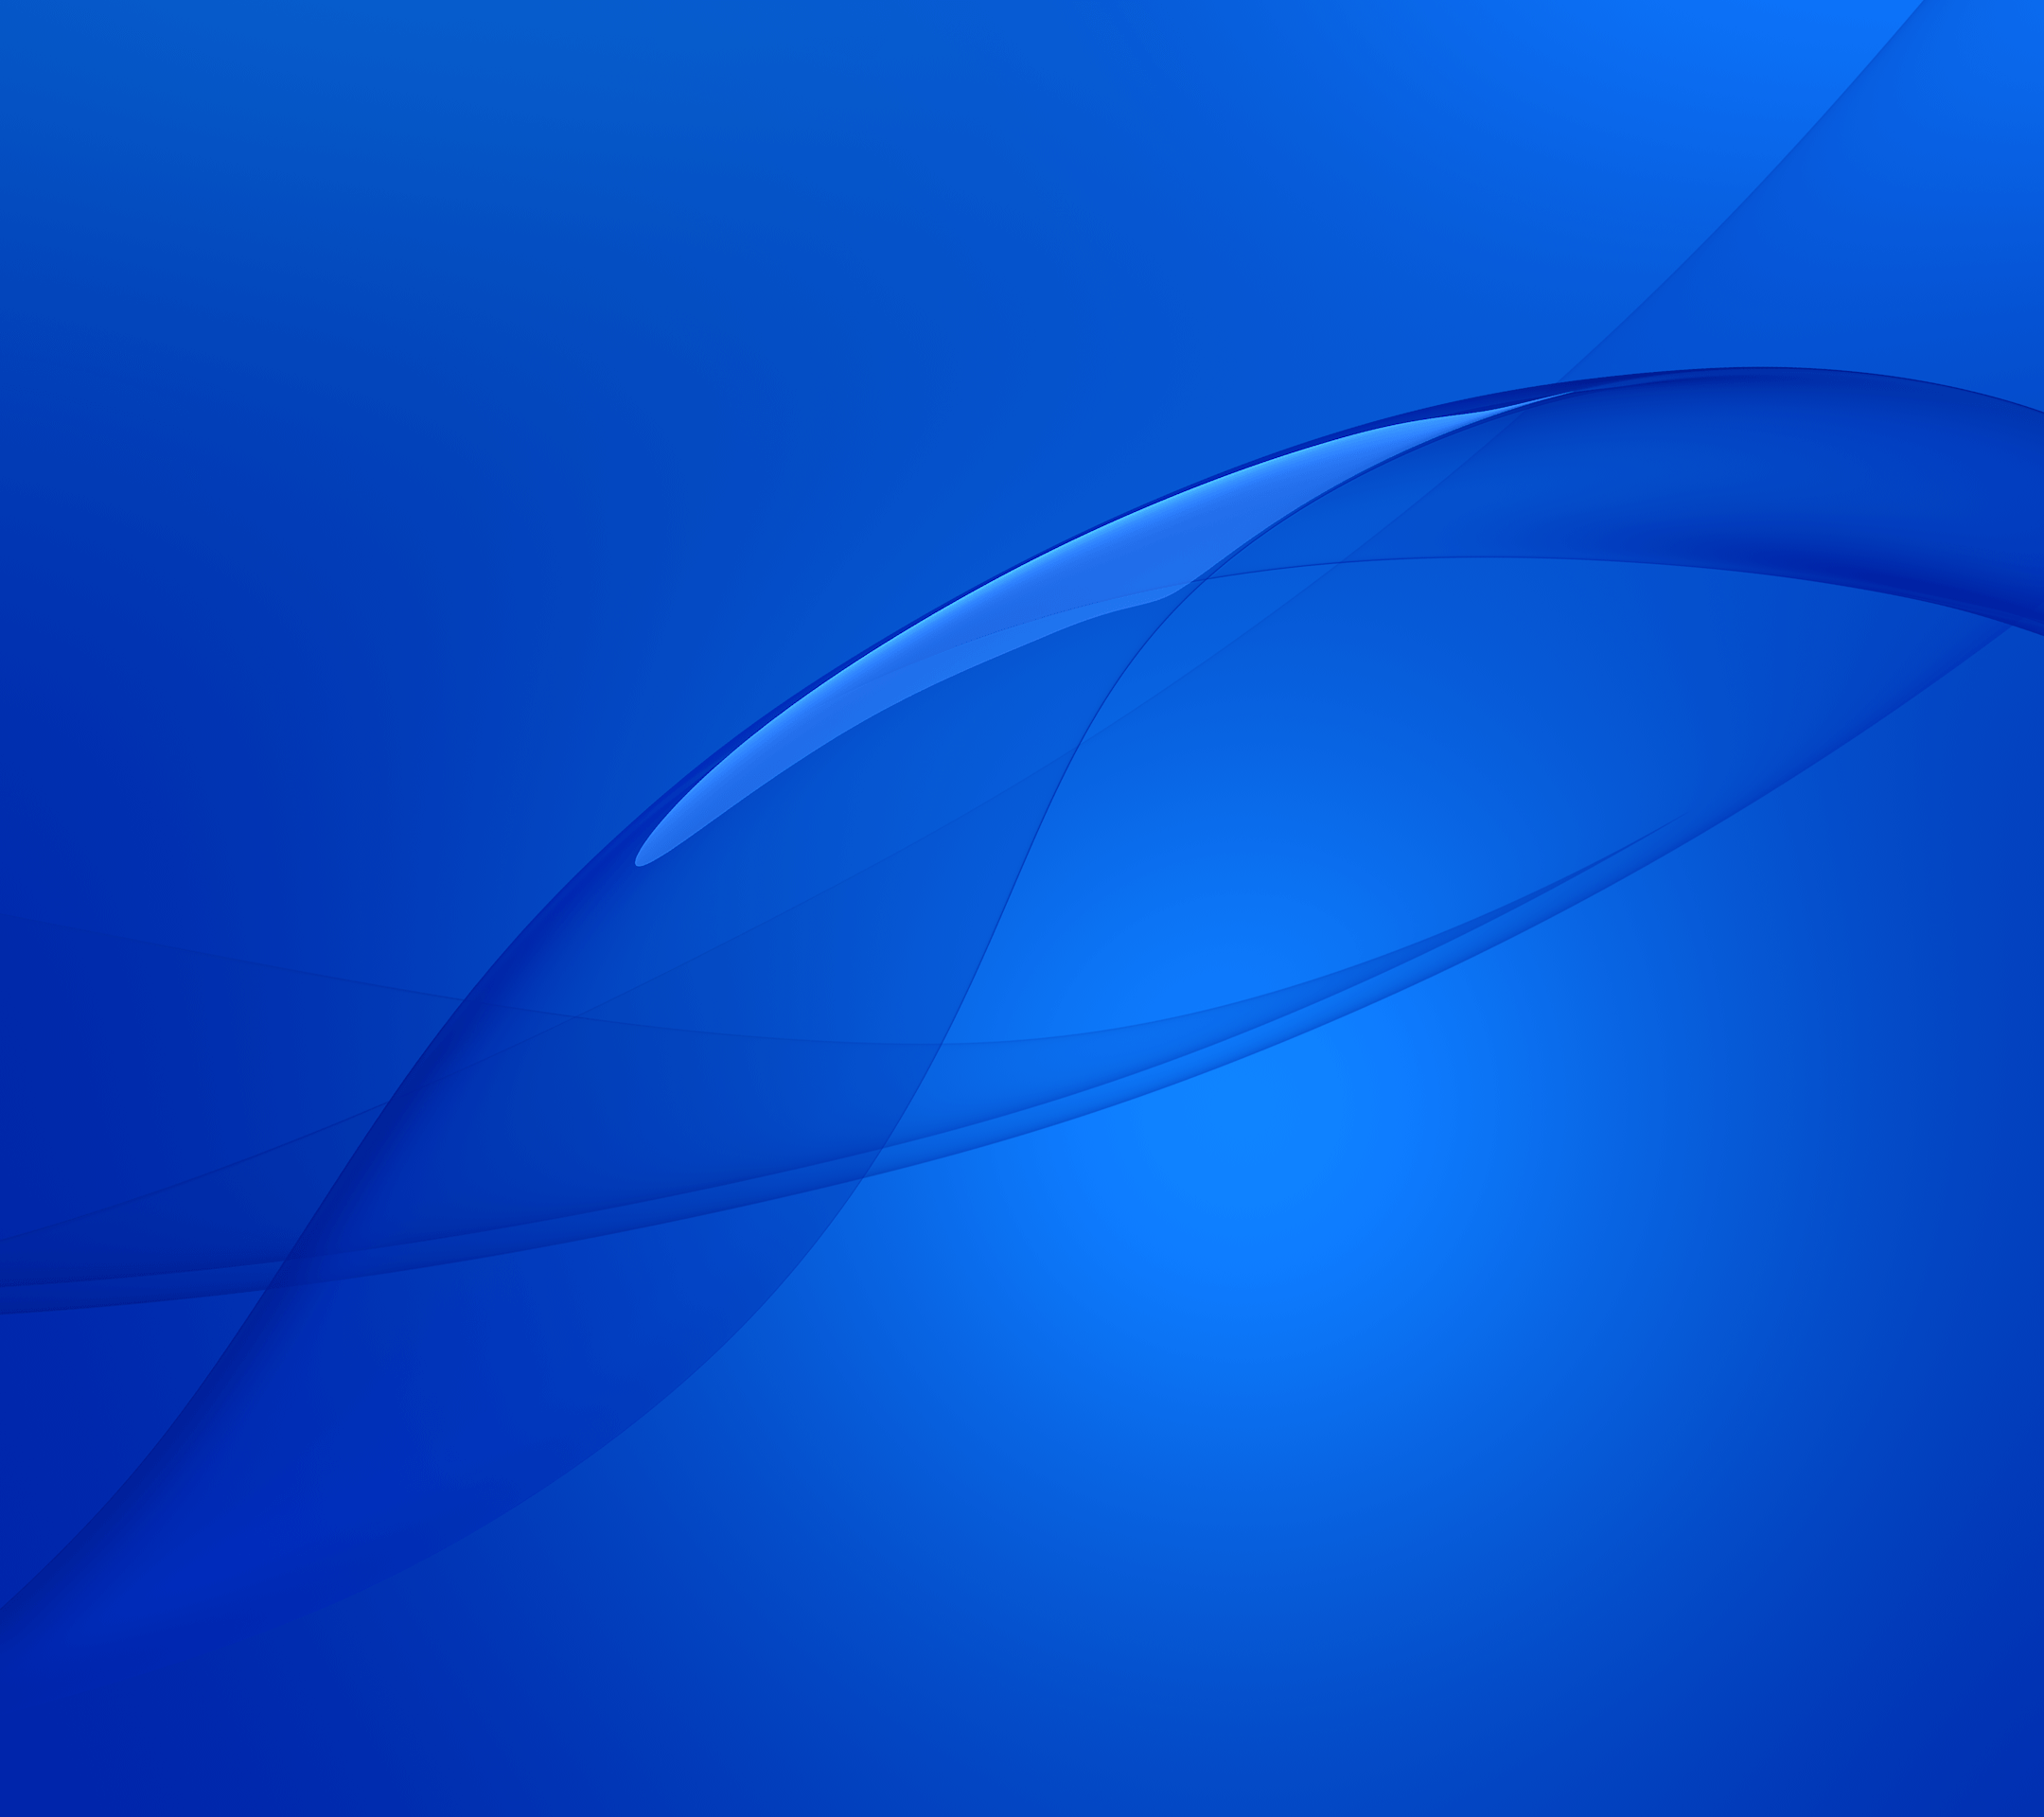 Sony Xperia Z3 wallpapers available for download | TalkAndroid.com